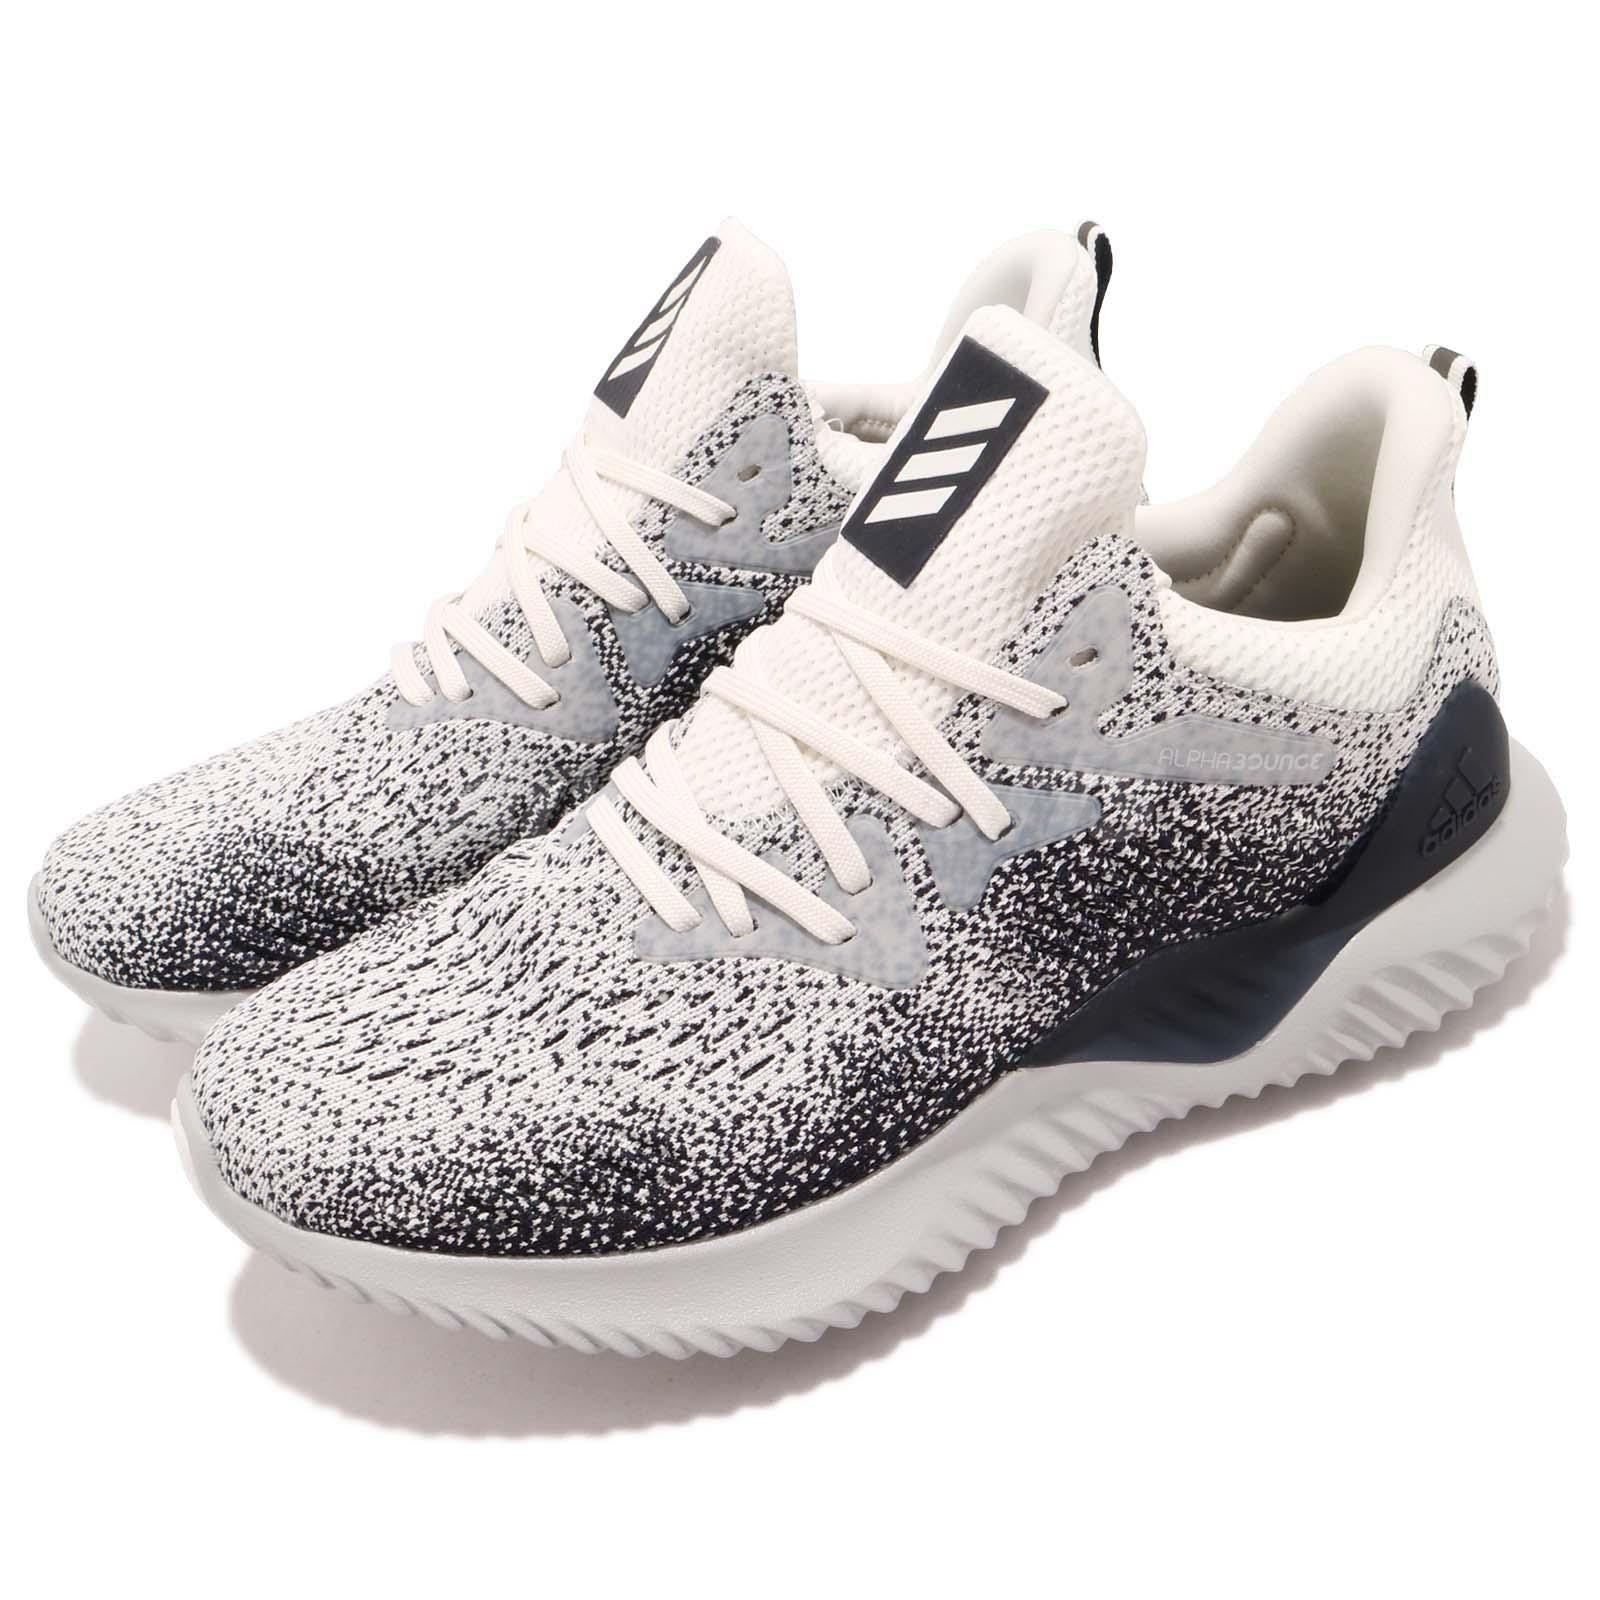 041801e5030fa Details about adidas Alphabounce Beyond M White Legend Ink Men Running  Shoes Sneakers AQ0575